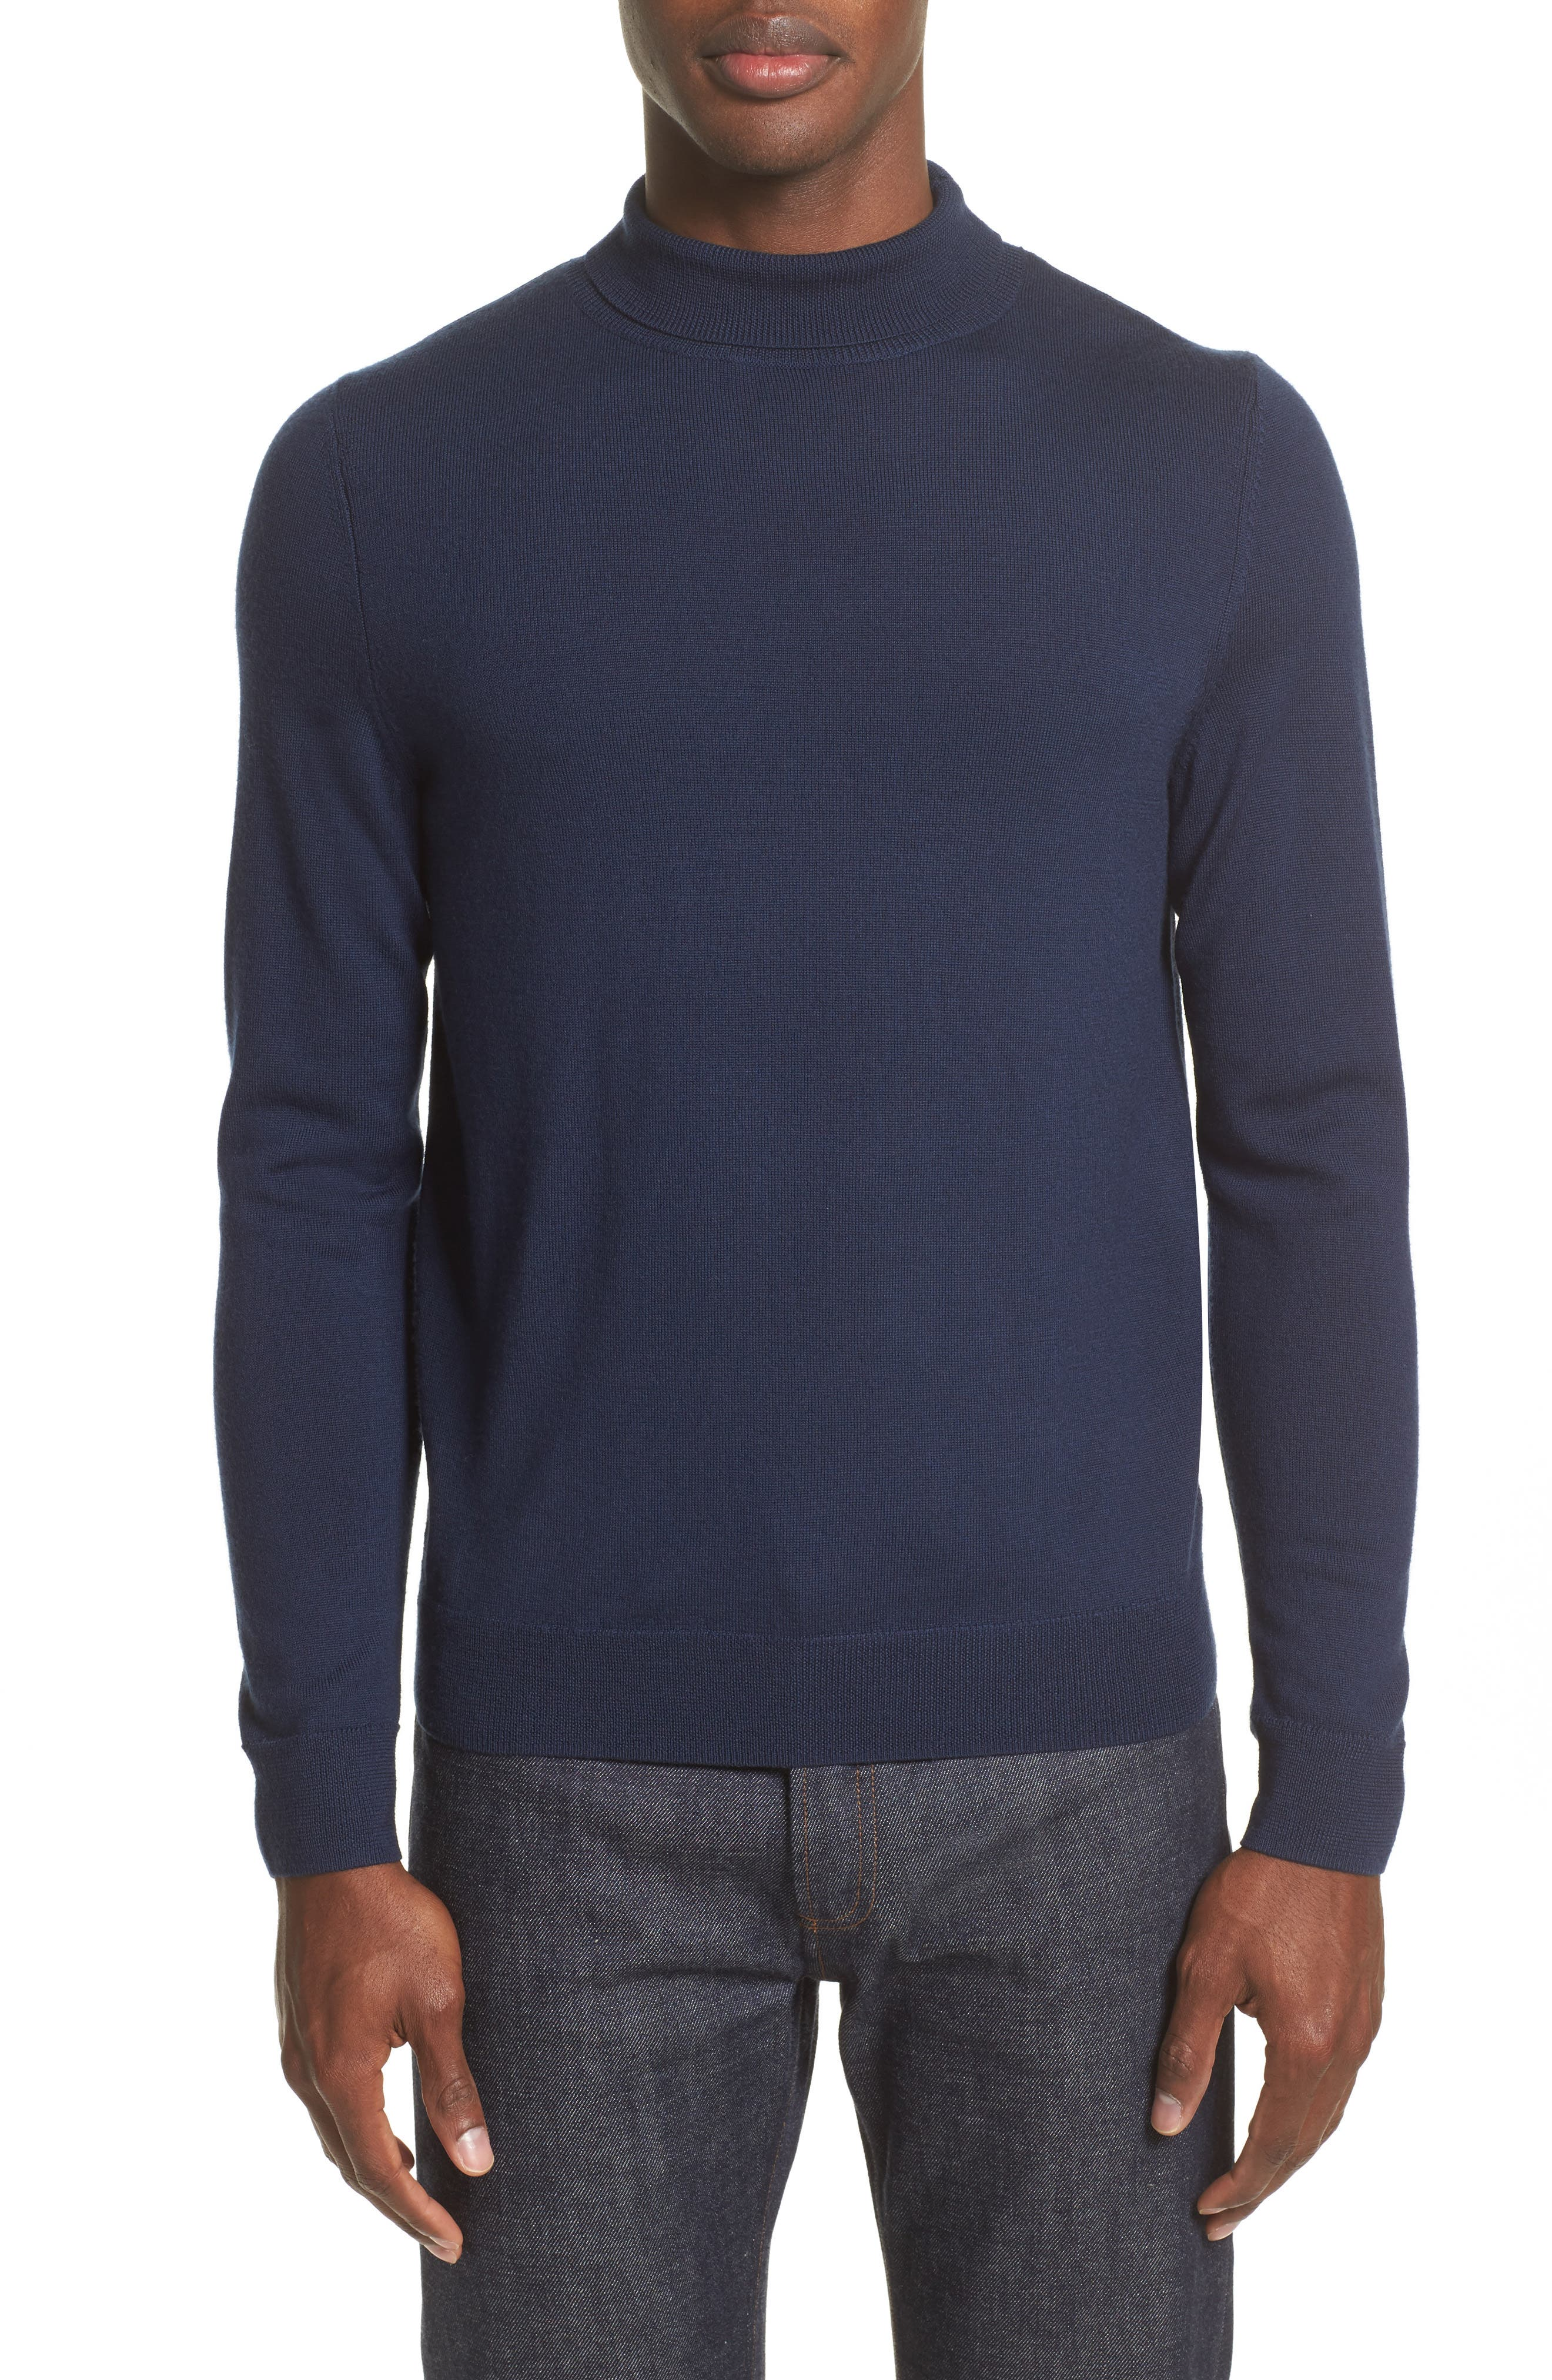 Dundee Mock Neck Sweater,                             Main thumbnail 1, color,                             420